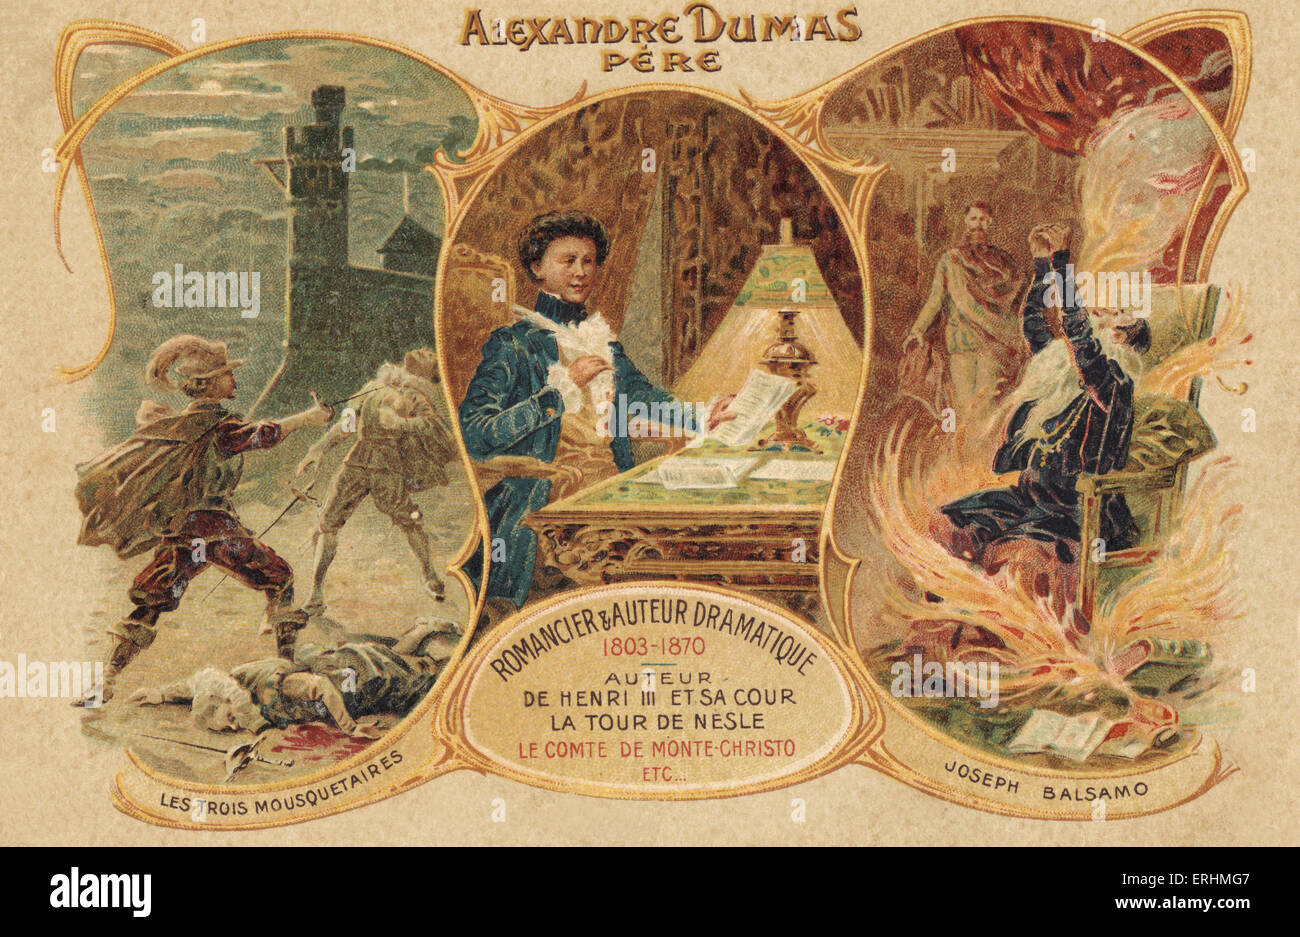 Alexandre Dumas père -  French  writer, Writing at his desk with The Three Musketeers / Les Trois Mousquetaires, - Stock Image